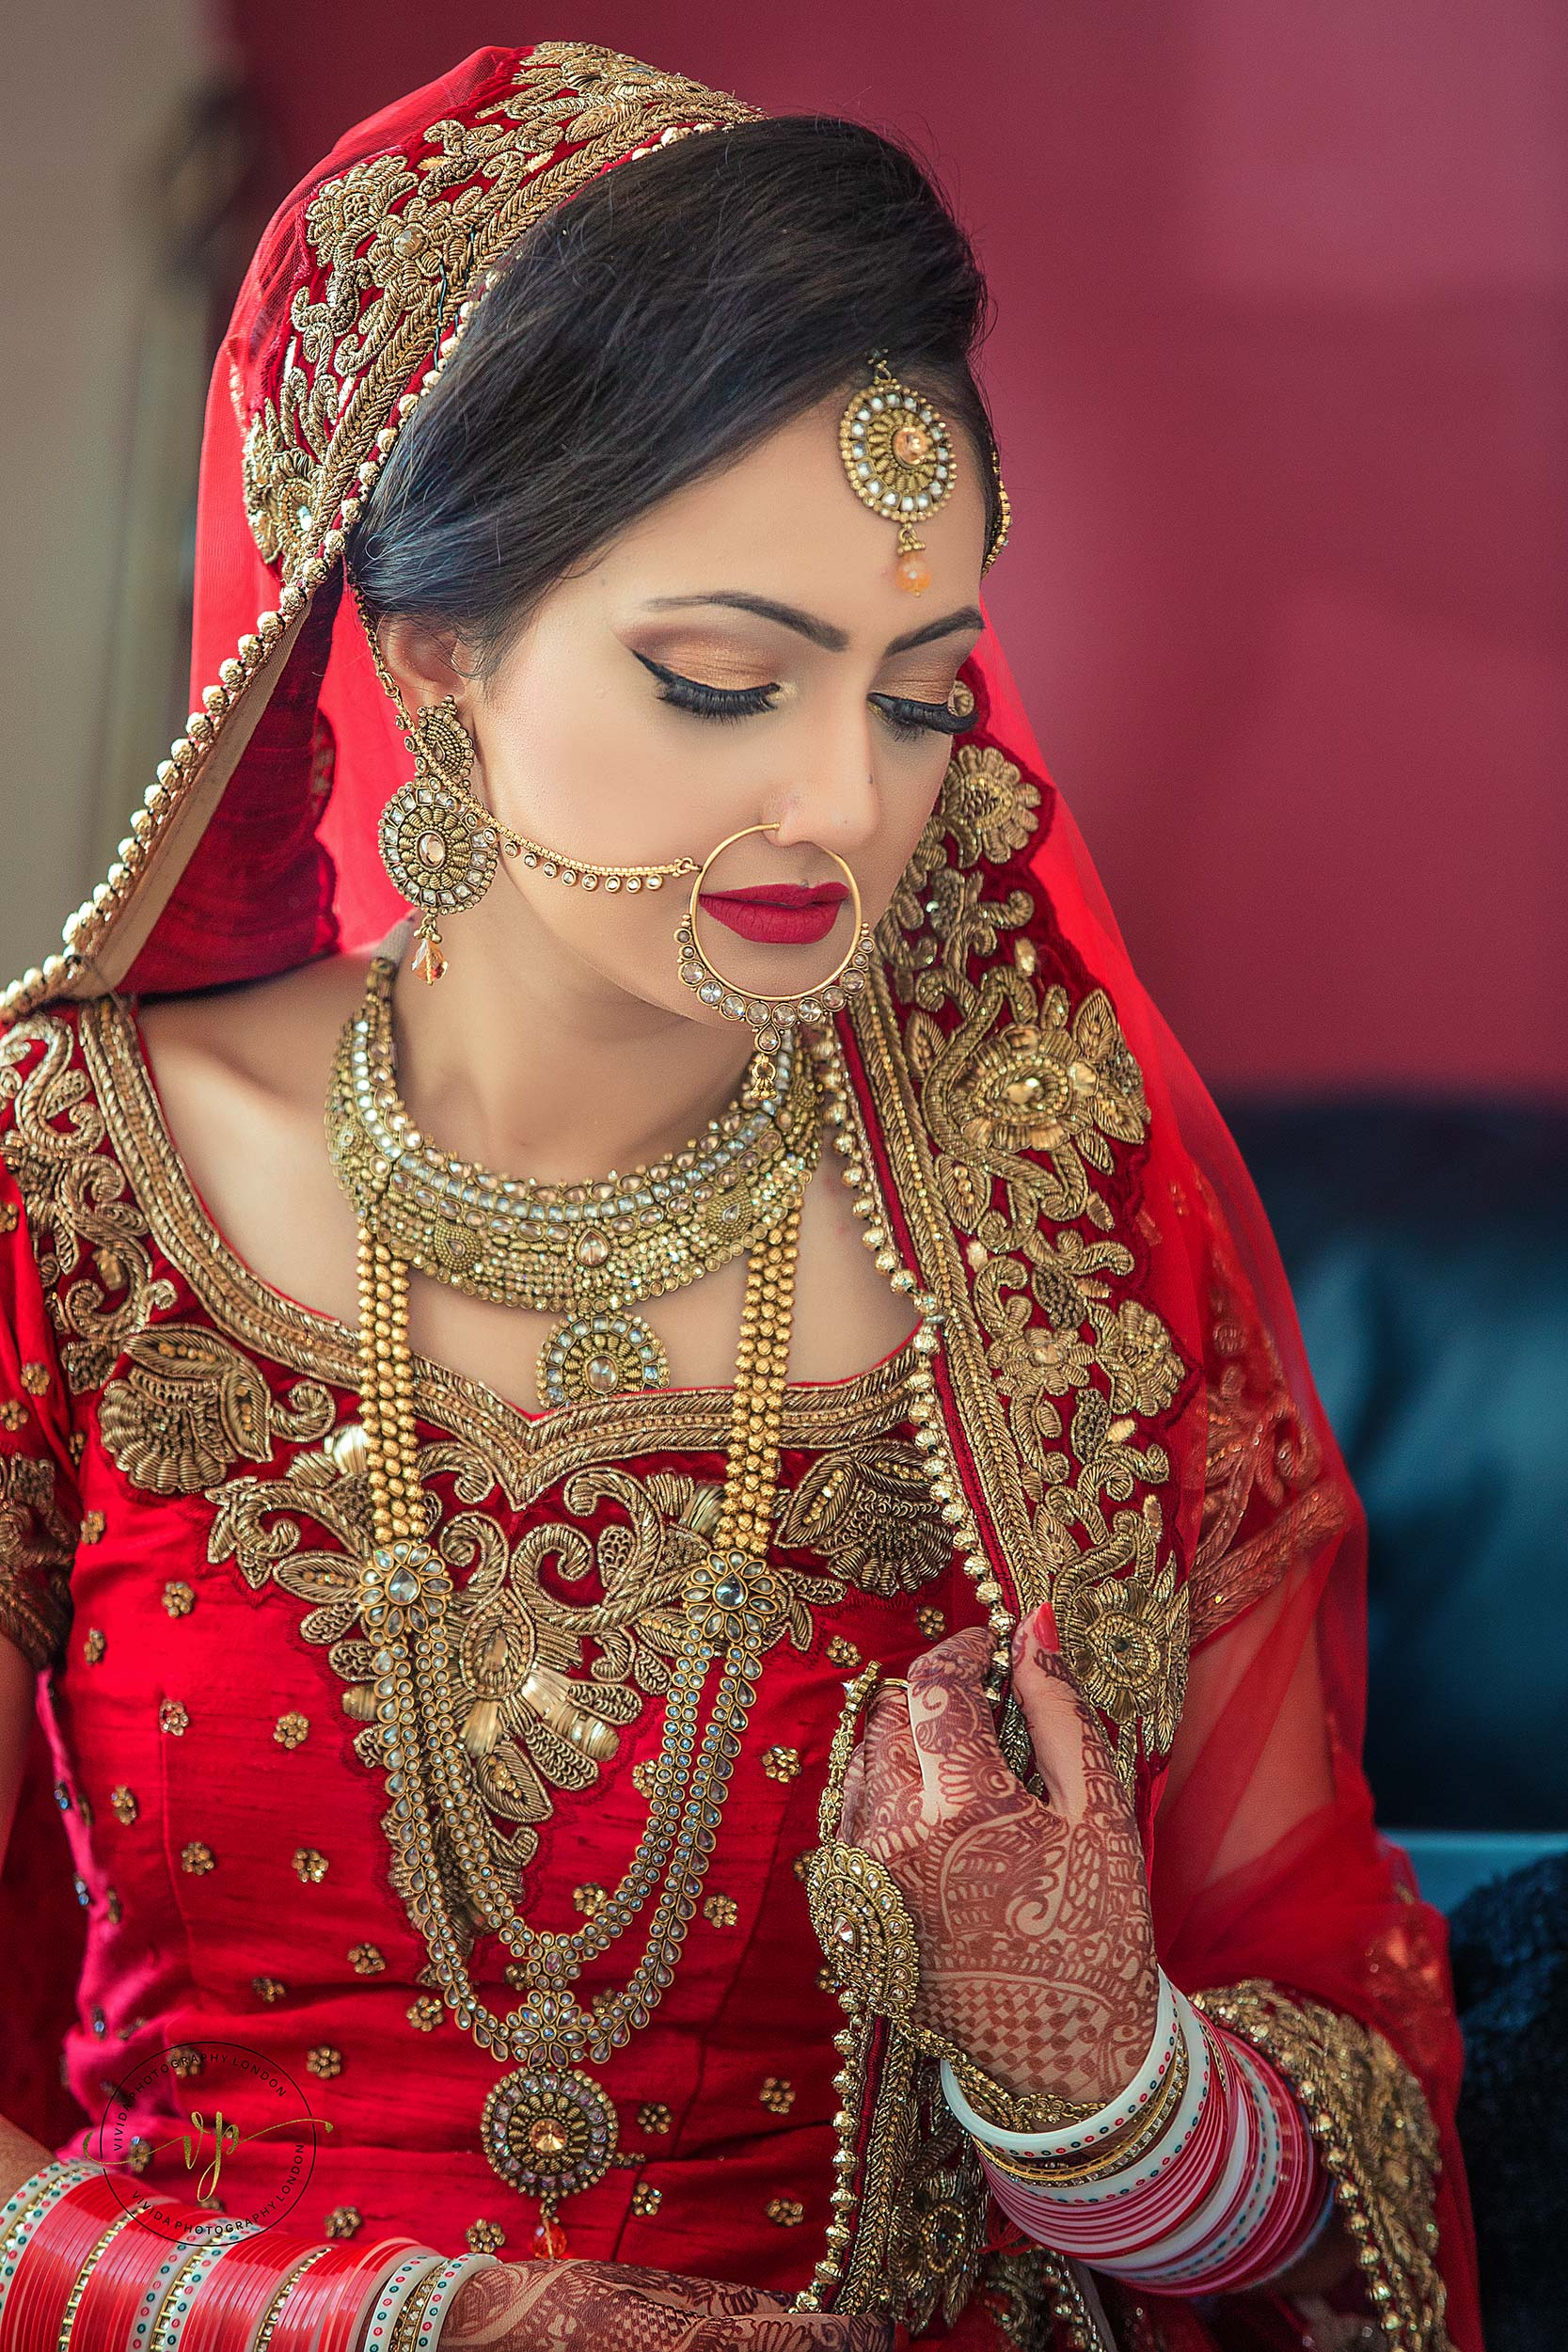 sikh+wedding+photography+london_25.jpg